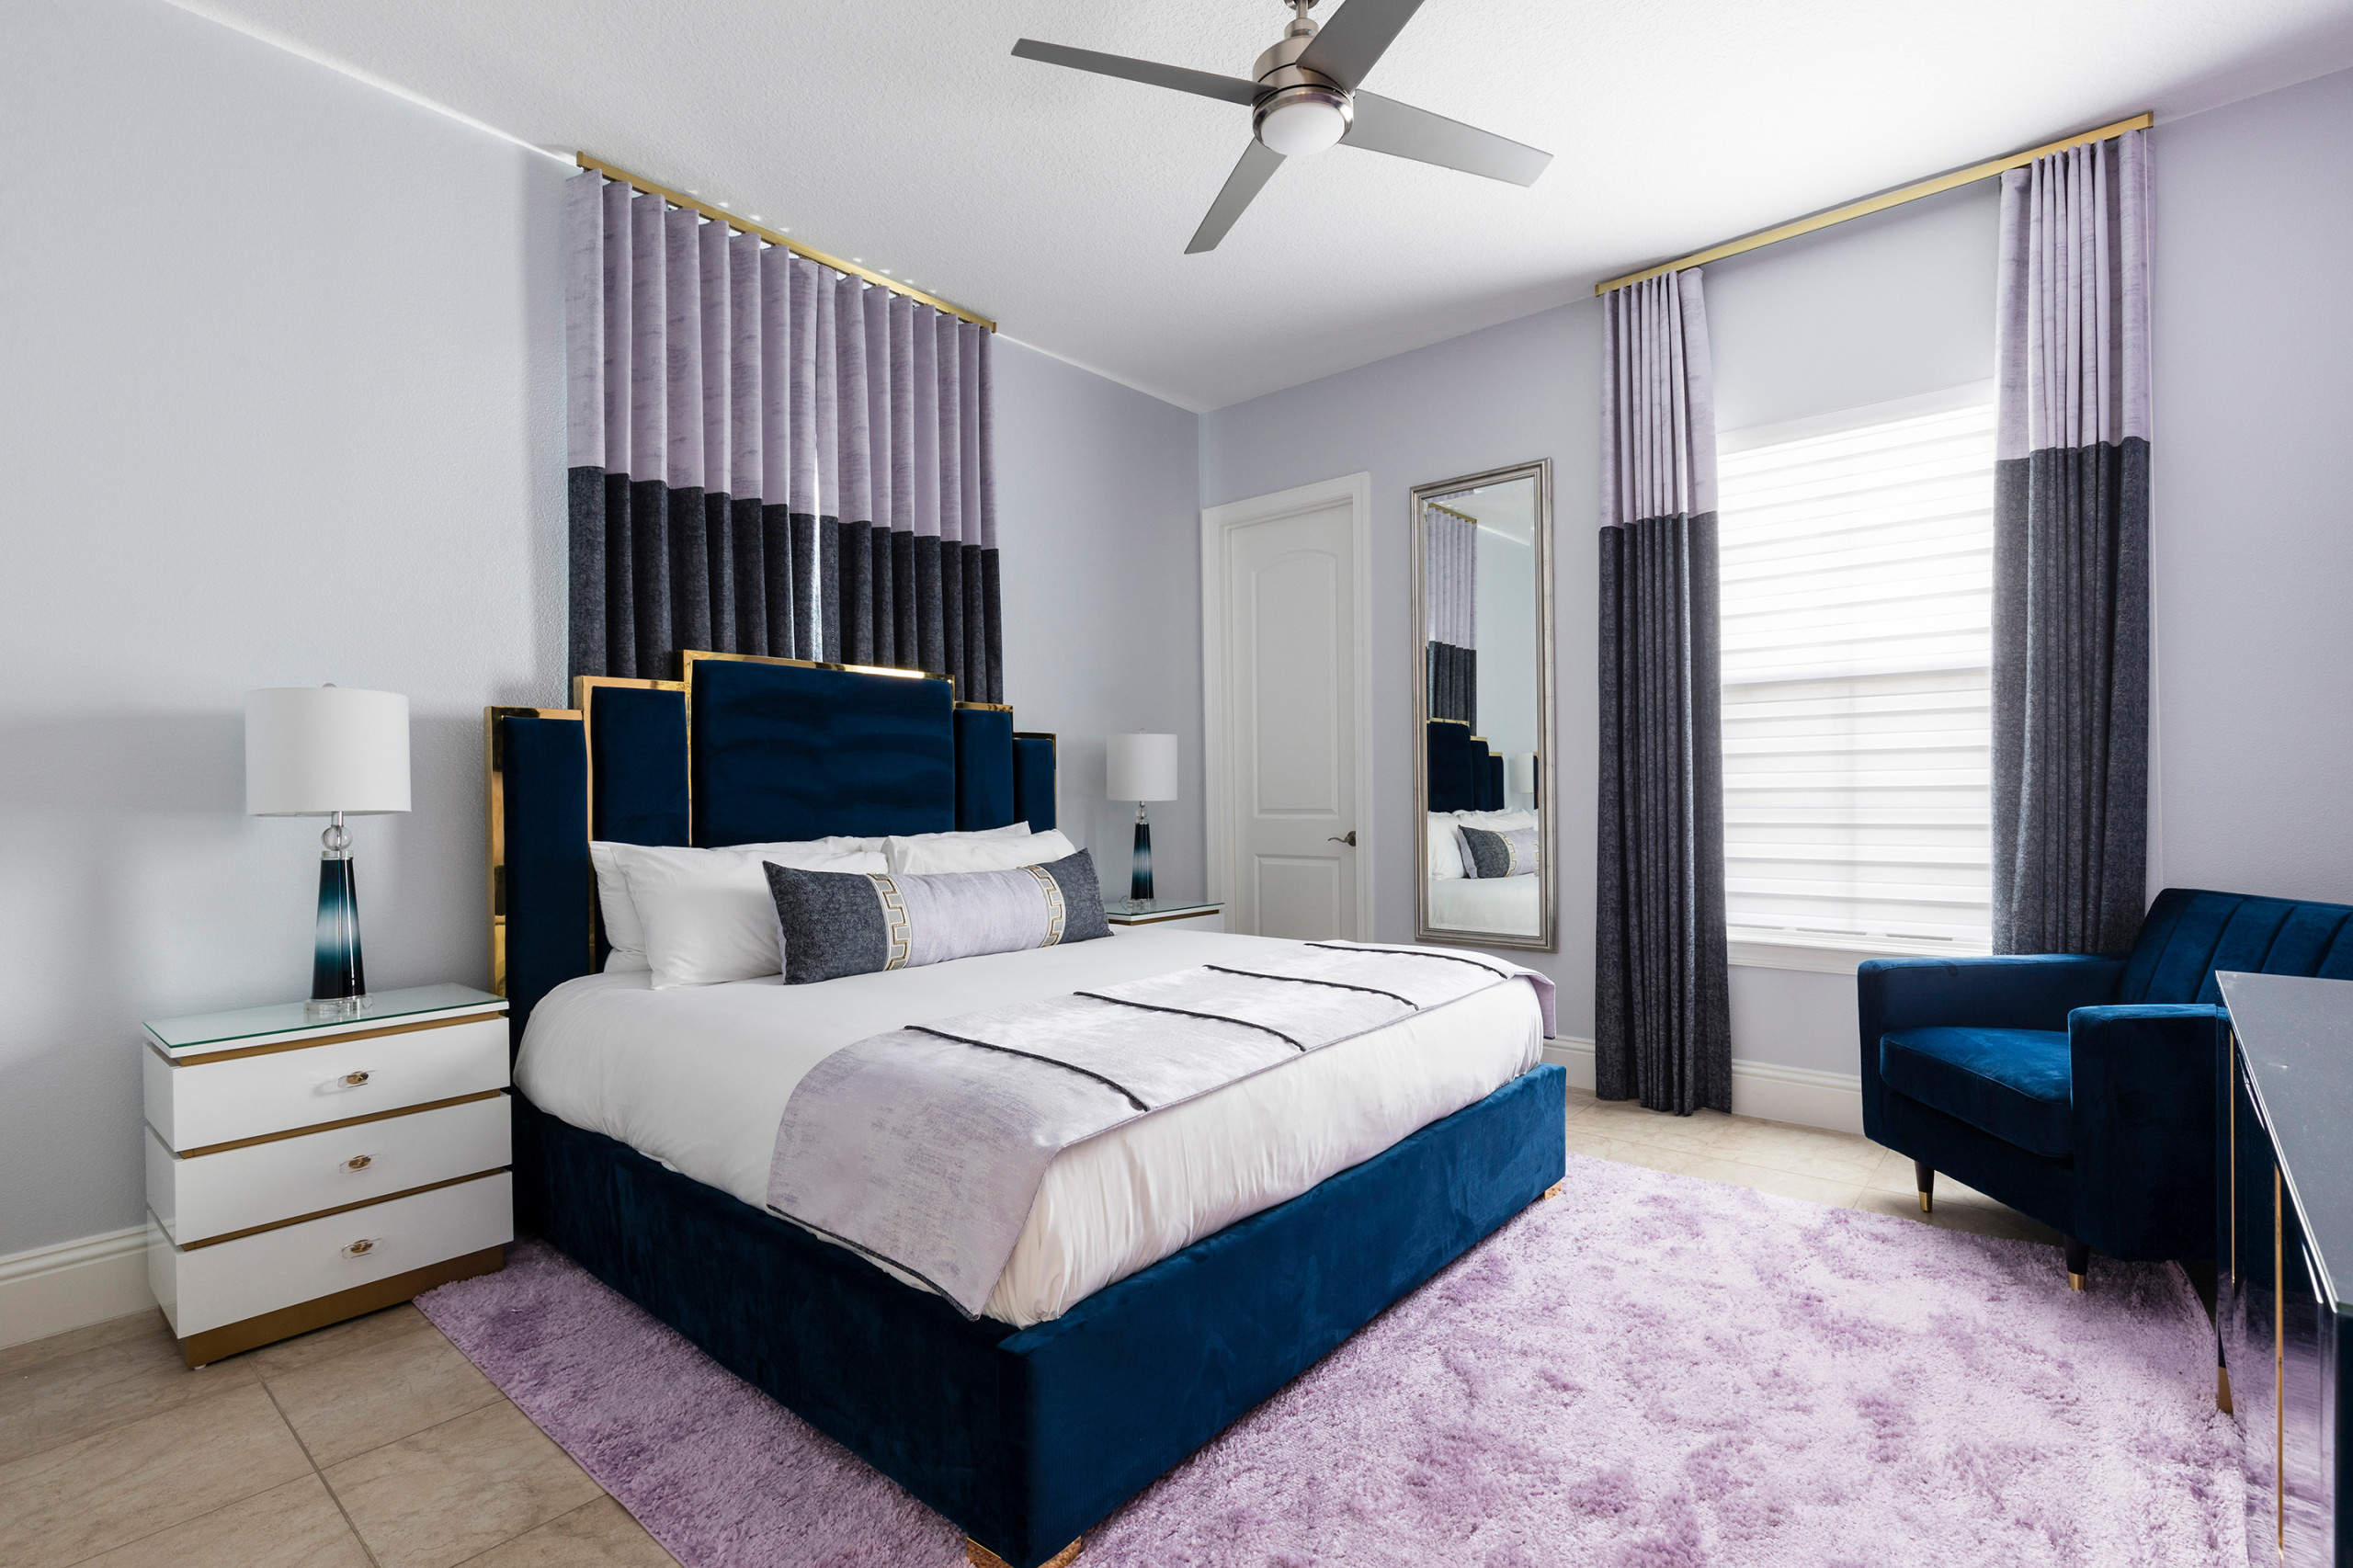 75 Beautiful Bedroom With Purple Walls Pictures Ideas July 2021 Houzz